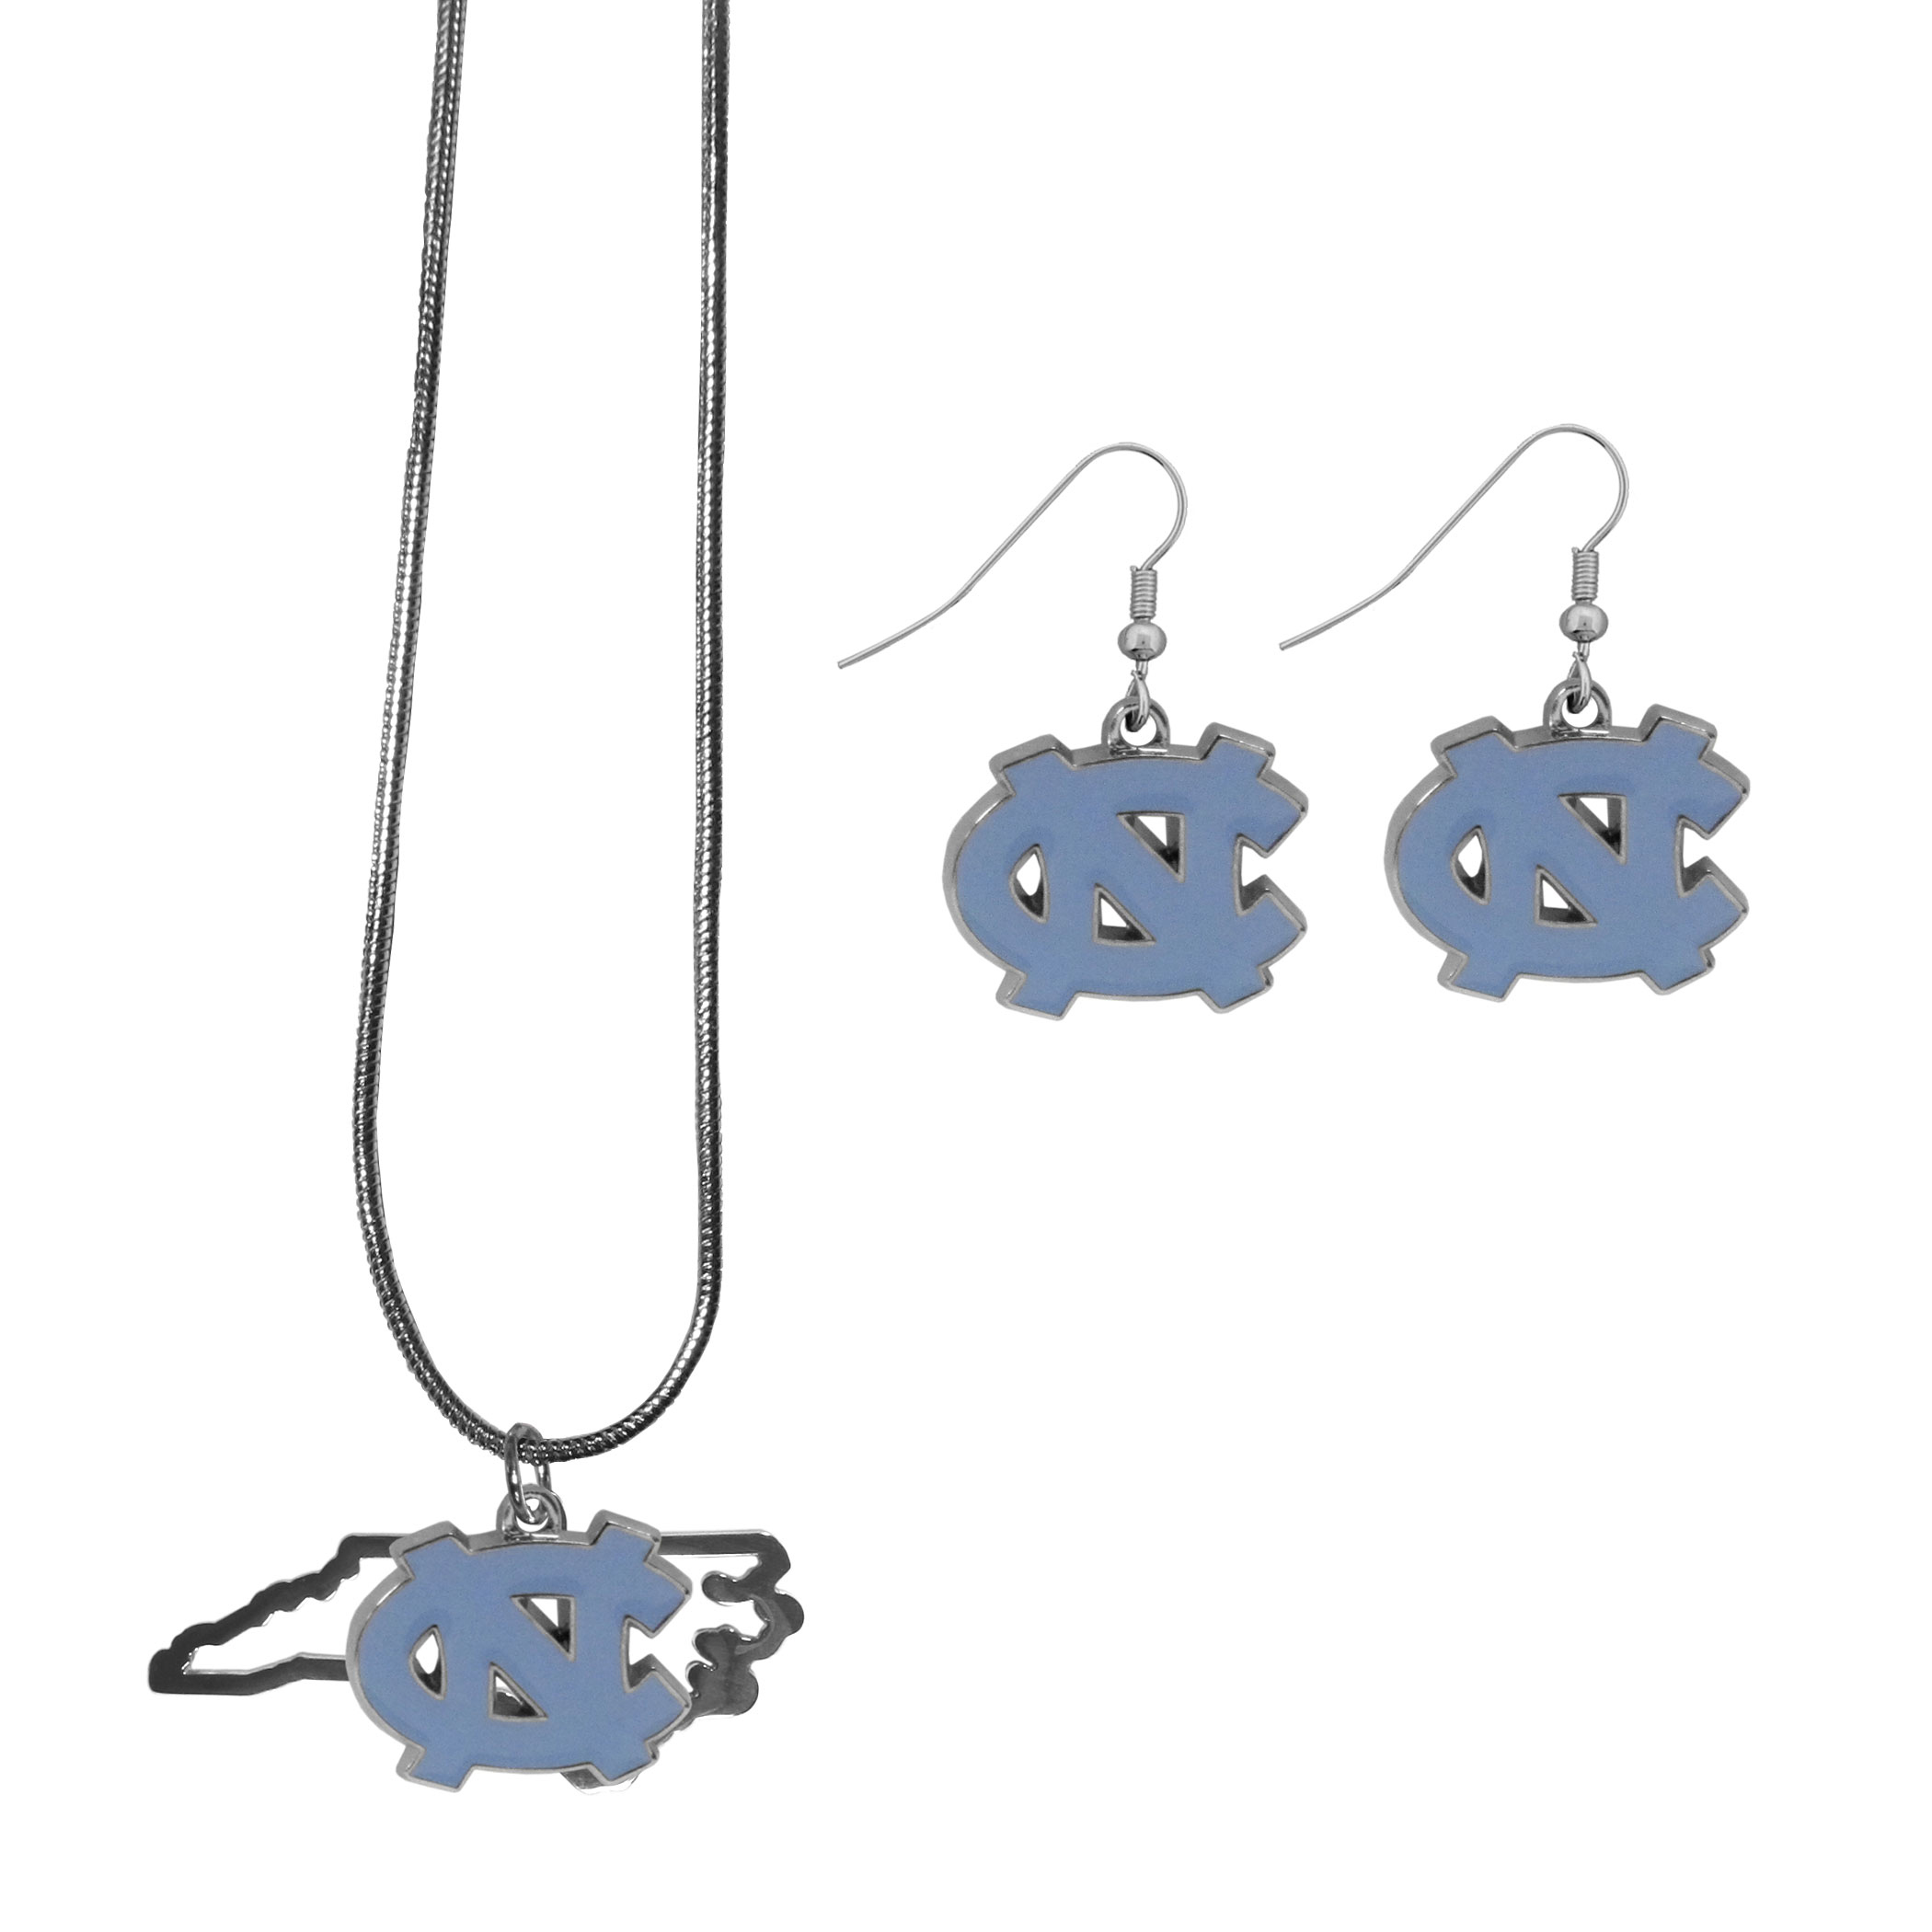 N. Carolina Tar Heels Dangle Earrings and State Necklace Set - Get in on the trend! State themes are a trend that just keeps getting more popular and this jewelry set takes the state style and give it a sporty twist with a N. Carolina Tar Heels necklace that features an Arizona state outline charm paired with a beautiful team charm and matching team charm dangle earrings. The earrings feature hypoallergenic fishhook posts that are nickel free.